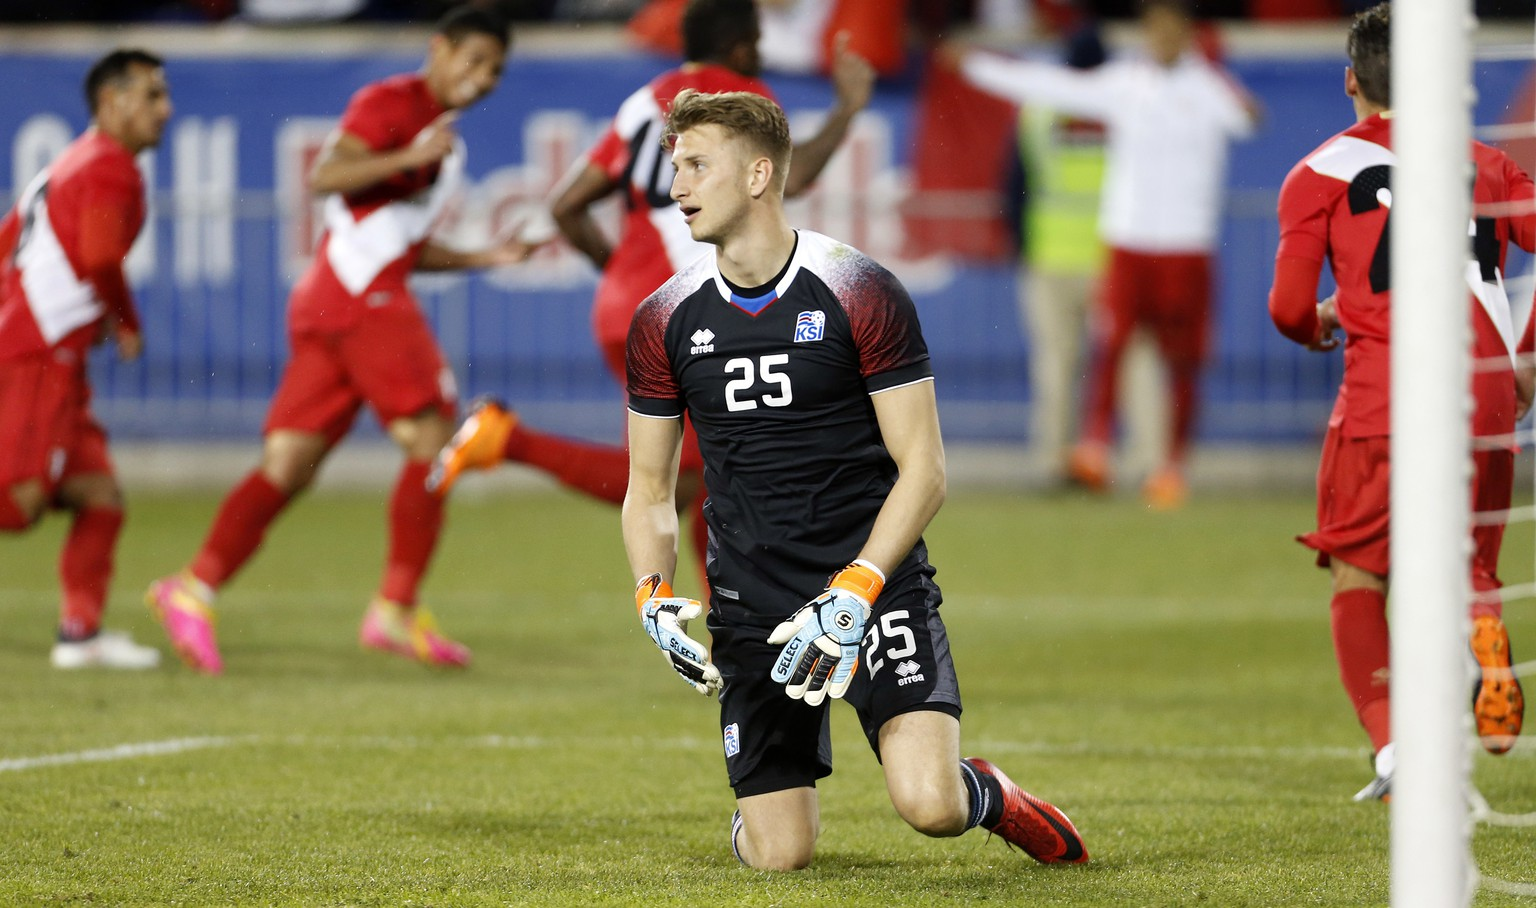 Iceland goalkeeper Frederik Schram reacts after giving up a goal to Peru forward Jefferson Farfan during the second half of an international friendly soccer match Tuesday, March 27, 2018, in Harrison, N.J. Peru won 3-1. (AP Photo/Adam Hunger)